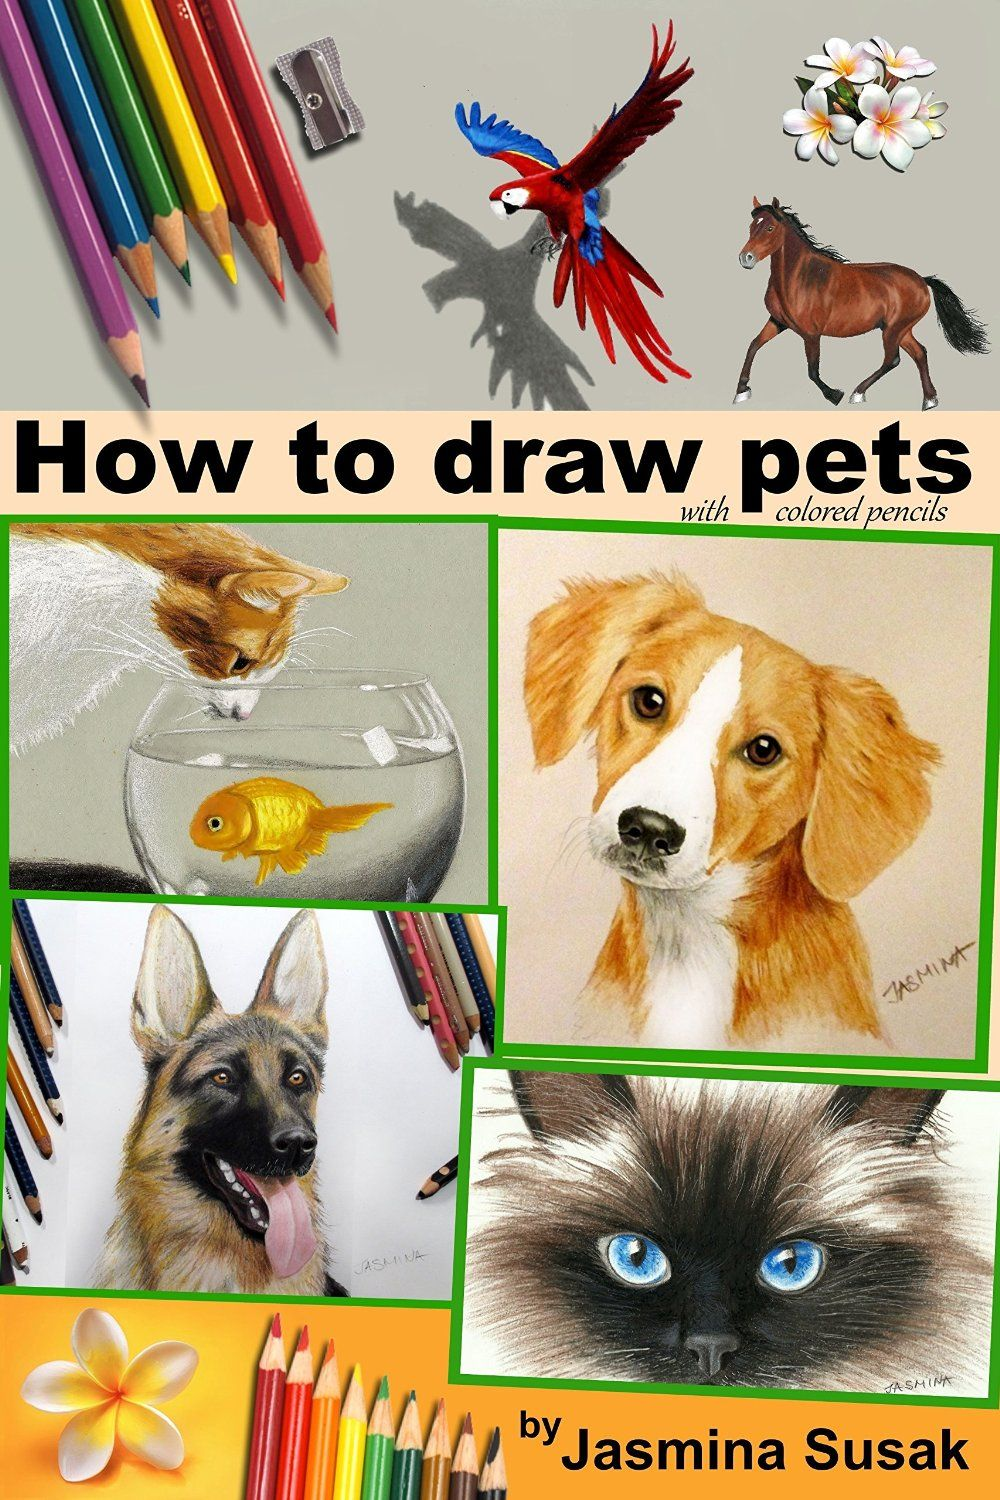 How to draw pets with colored pencils pdf